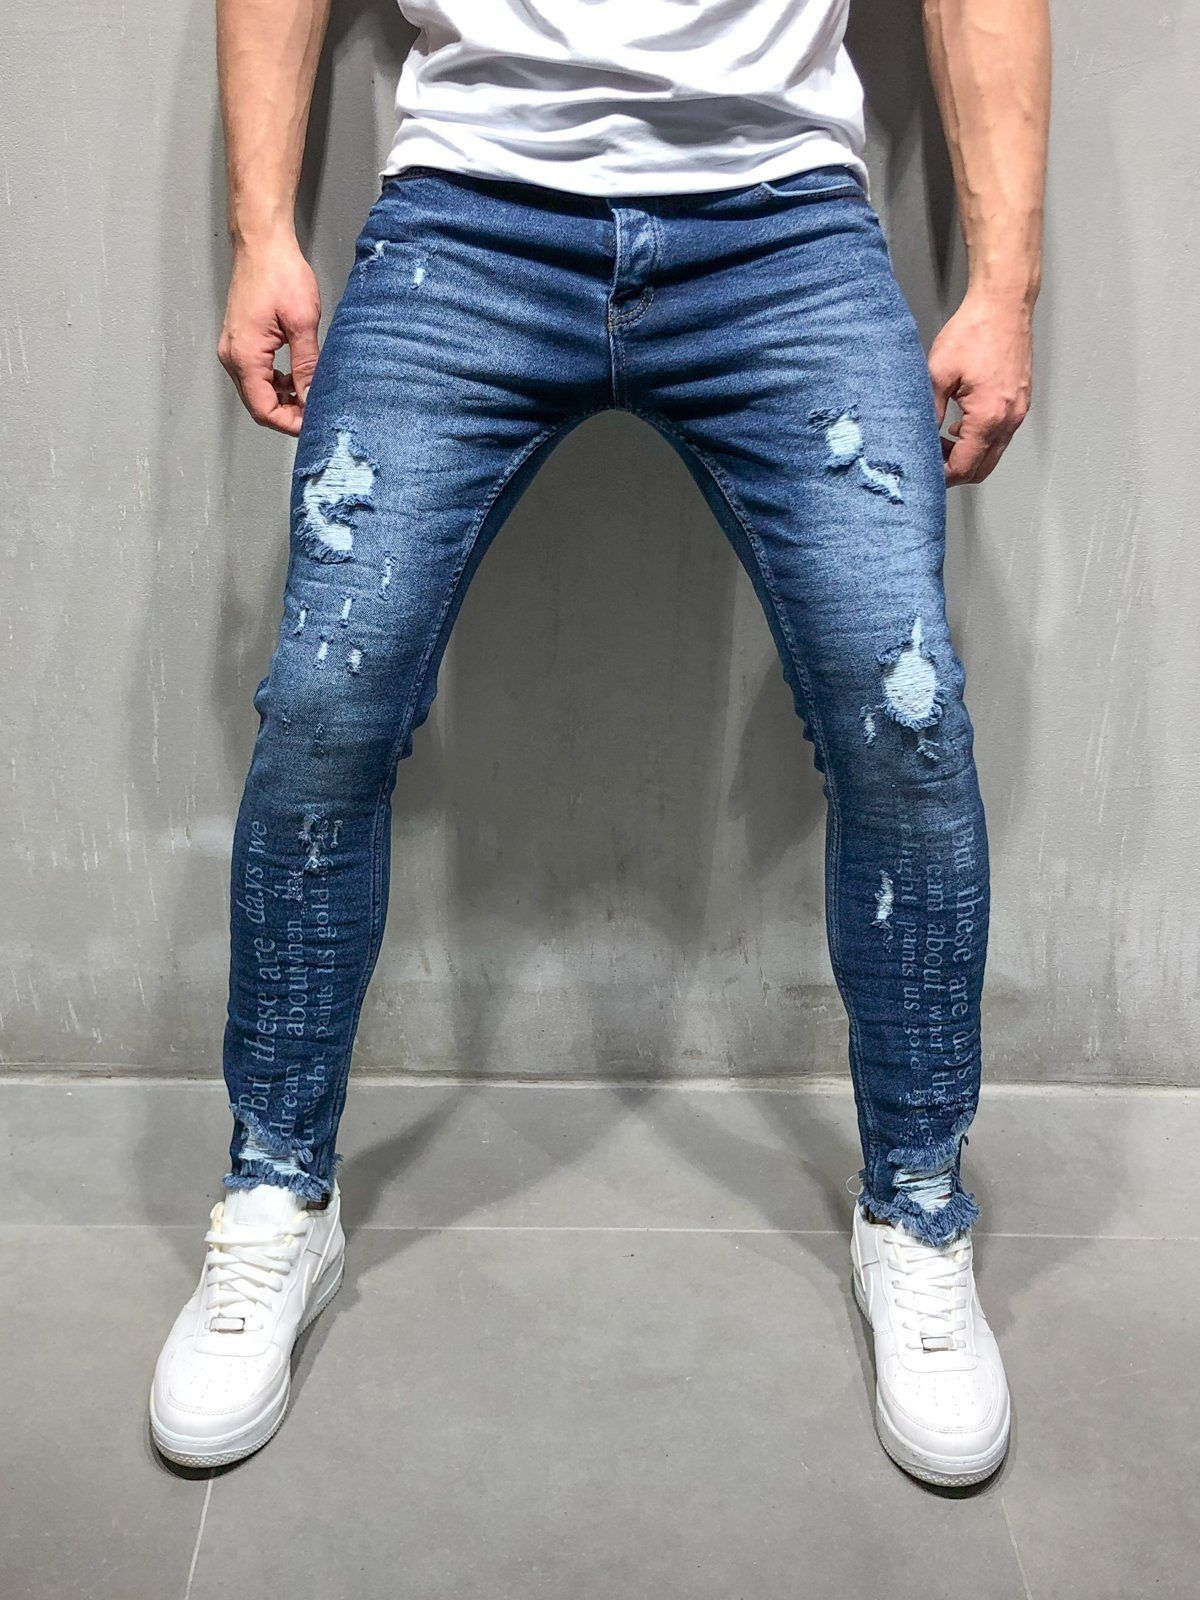 Skinny Ripped Jeans Type Print Blue Ropa Casual Hombres Moda Para Hombre Casual Jeans Para Hombre